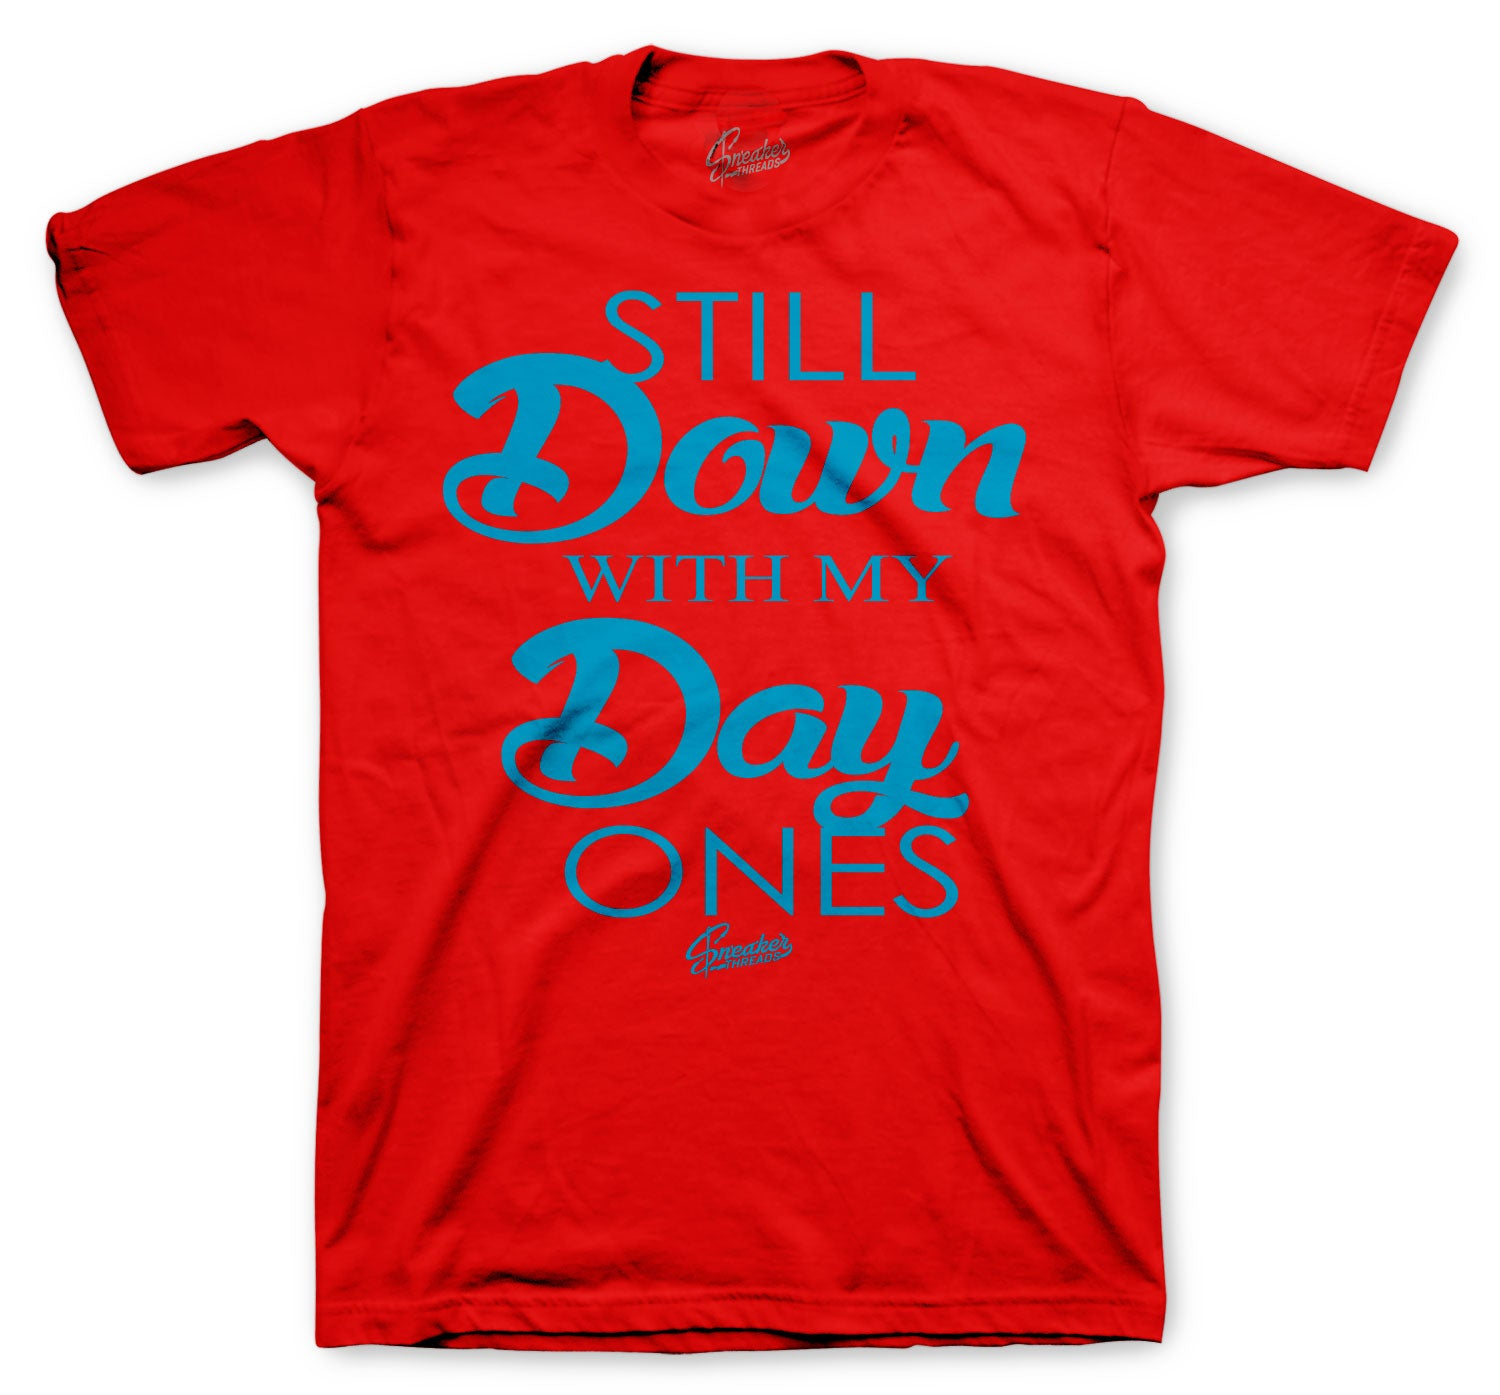 Jordan 1 NC To CHI Day Ones Shirt